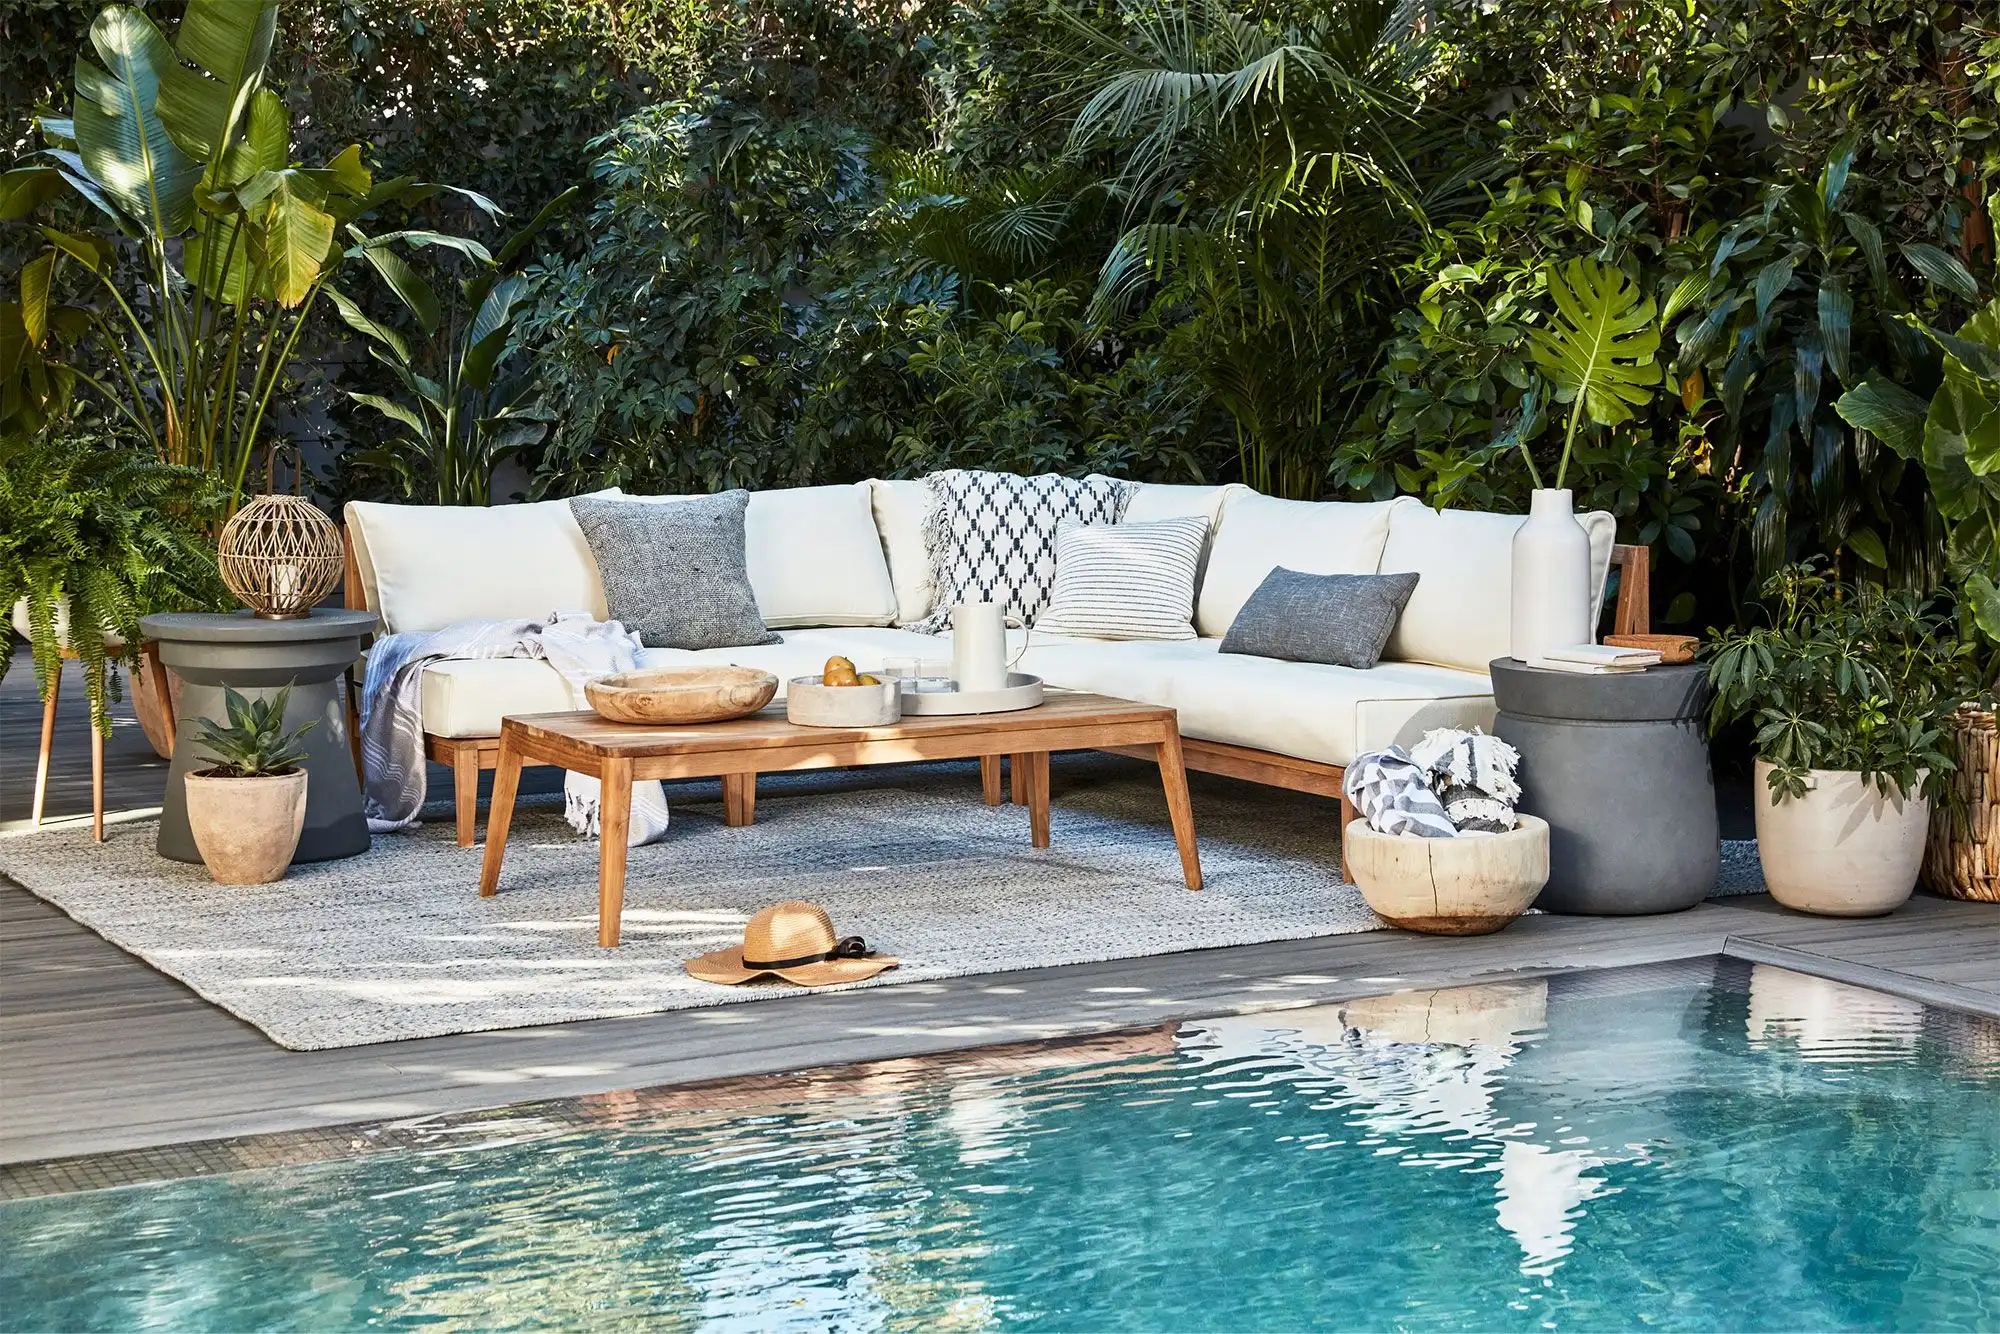 outdoor coffee table near a pool